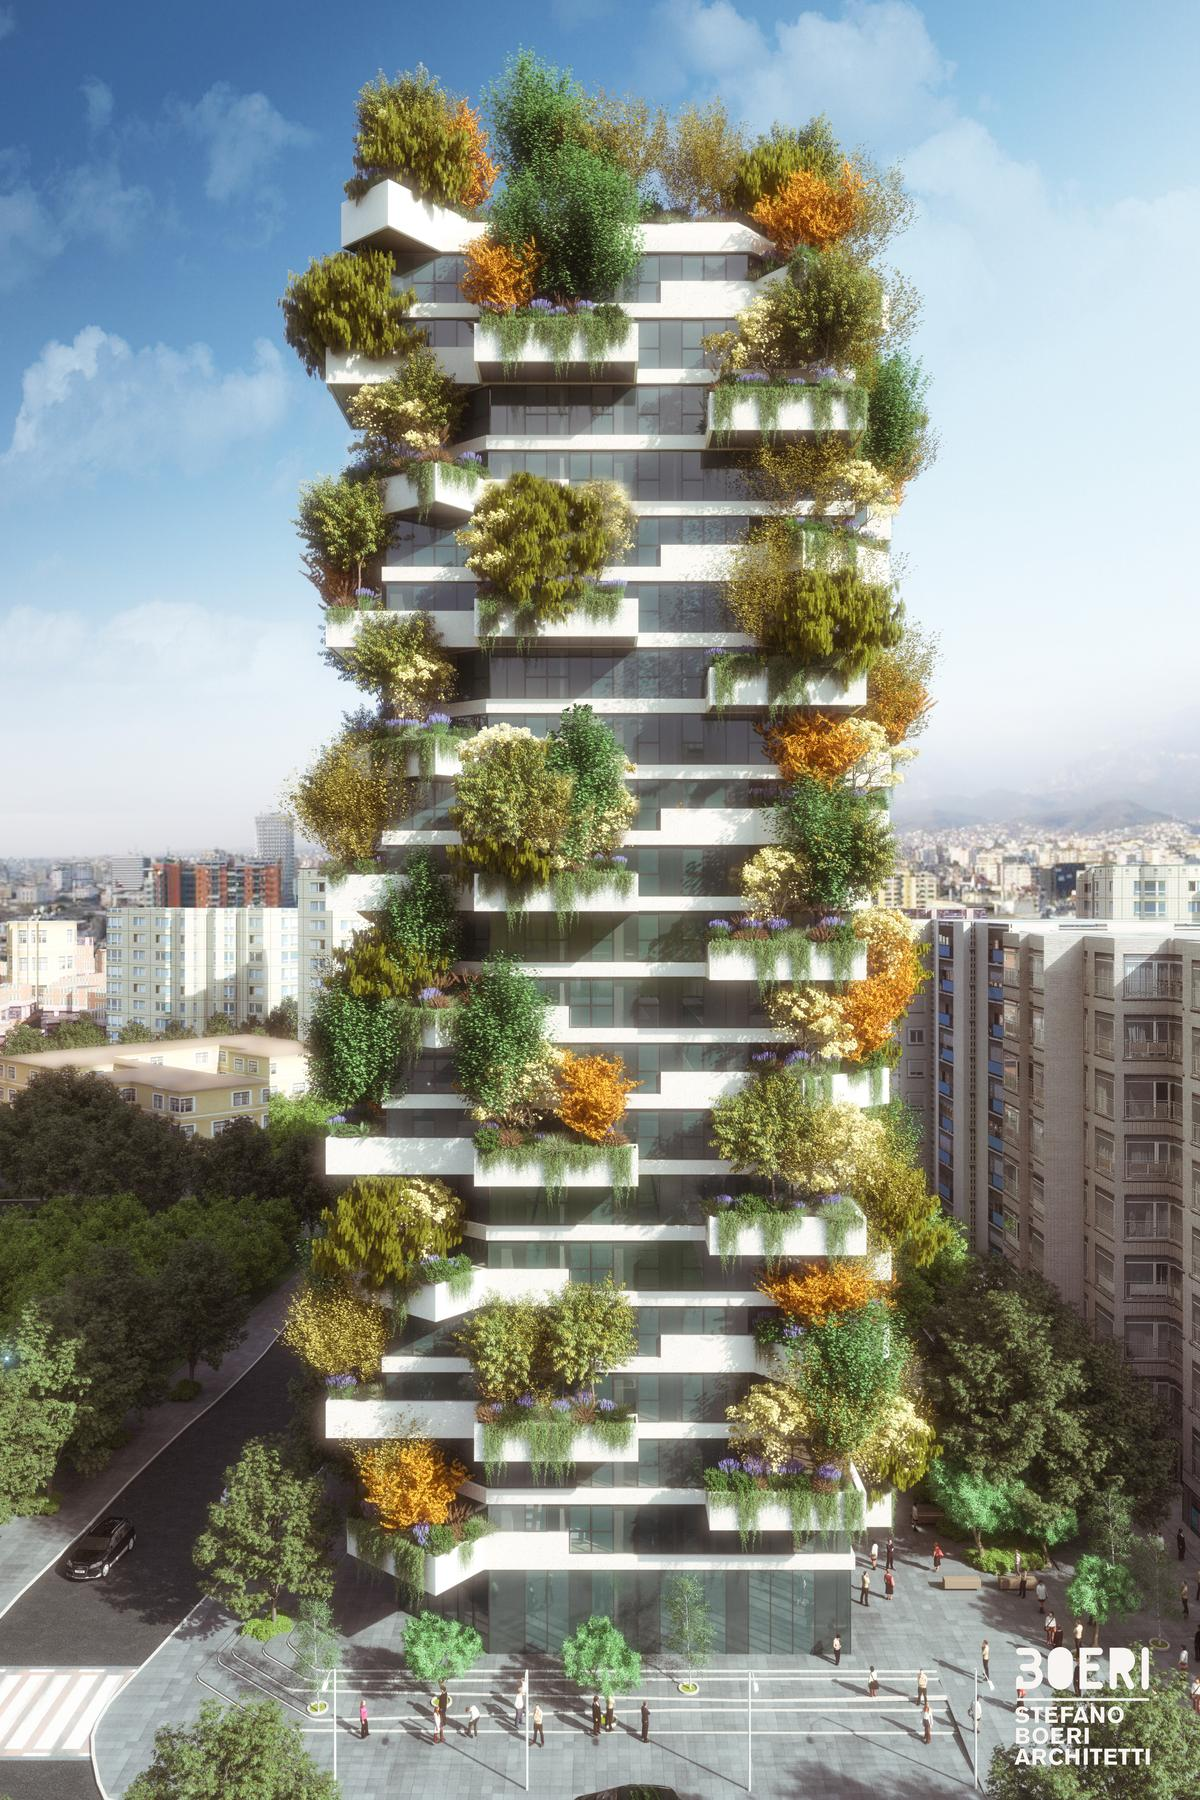 The Vertical Forest of Tirana will rise to 21 floors